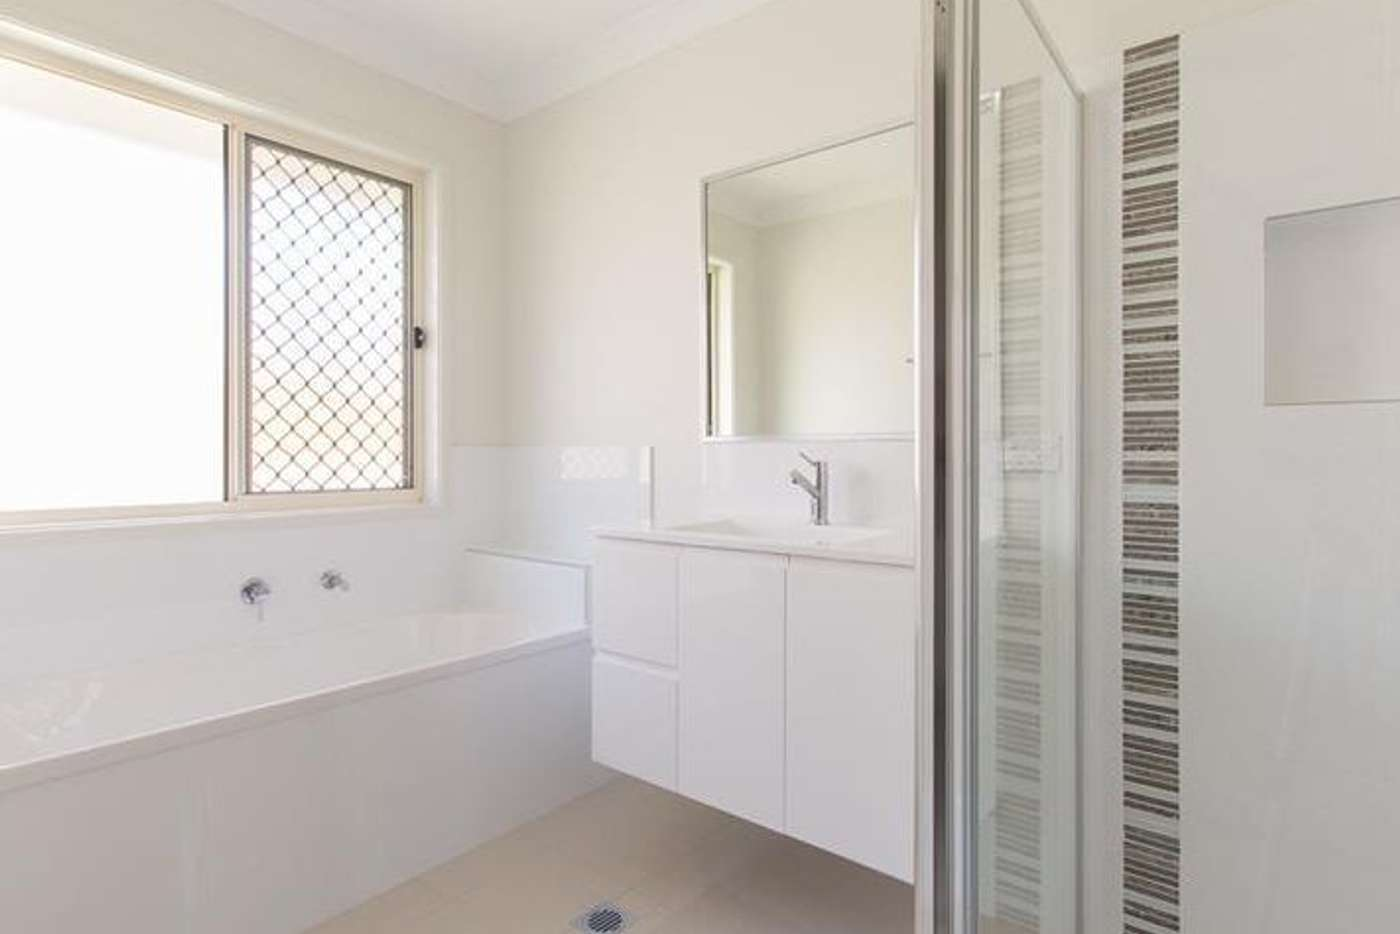 Sixth view of Homely house listing, 10 Tallwoods Circuit, Yarrabilba QLD 4207